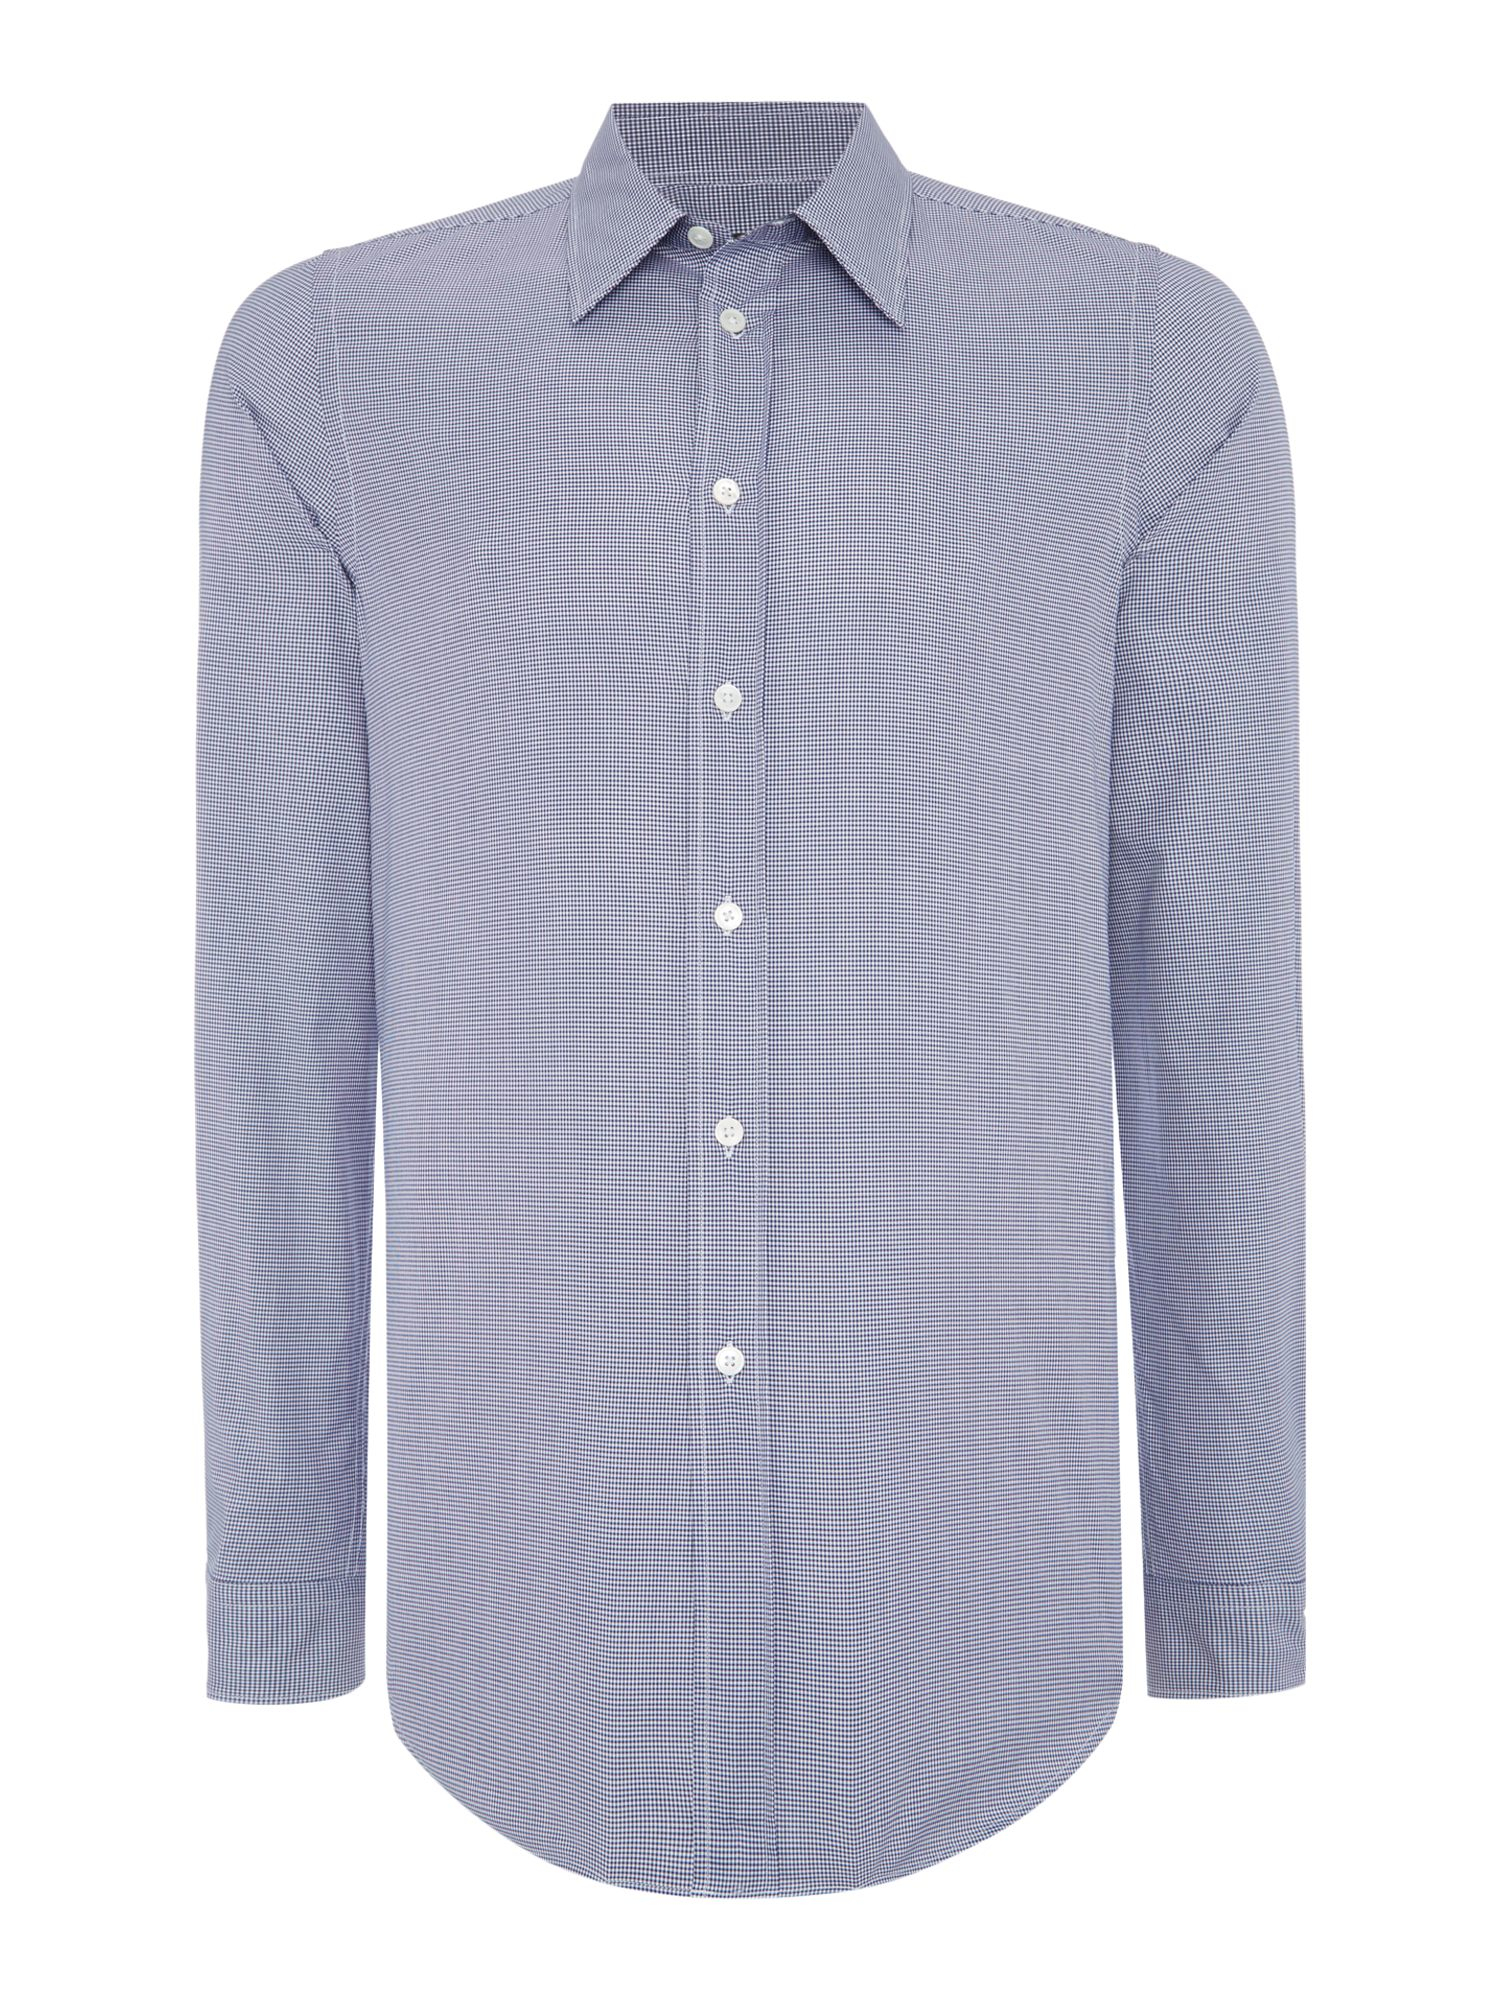 Ps by paul smith slim navy gingham shirt in blue for men for Navy blue gingham shirt